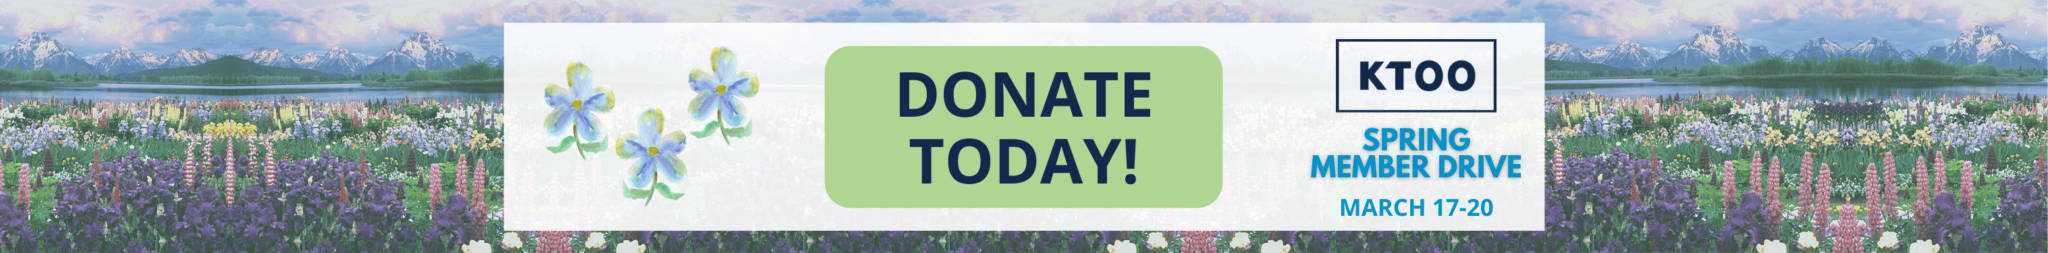 Donate Today! KTOO Spring Member Drive. March 17-20.